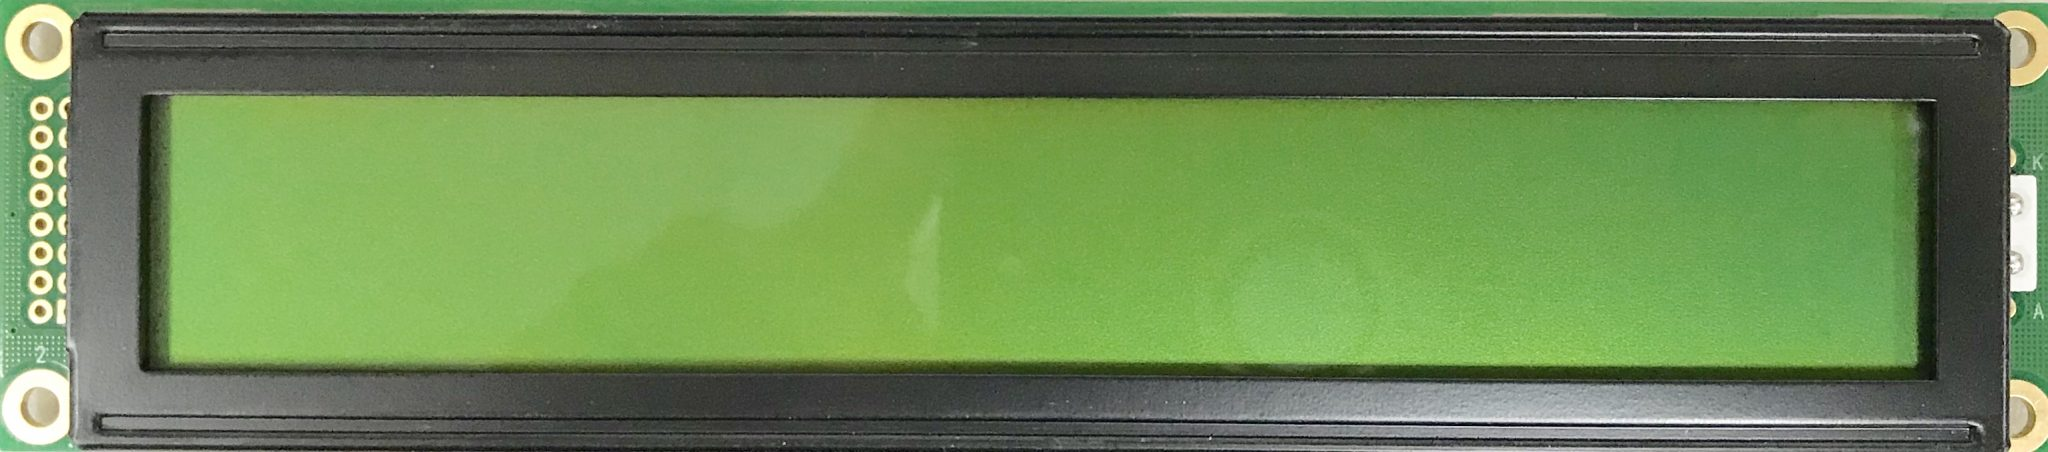 AMC2002DR-B-Y6WFDY-SY(20x2 Character LCD Module)